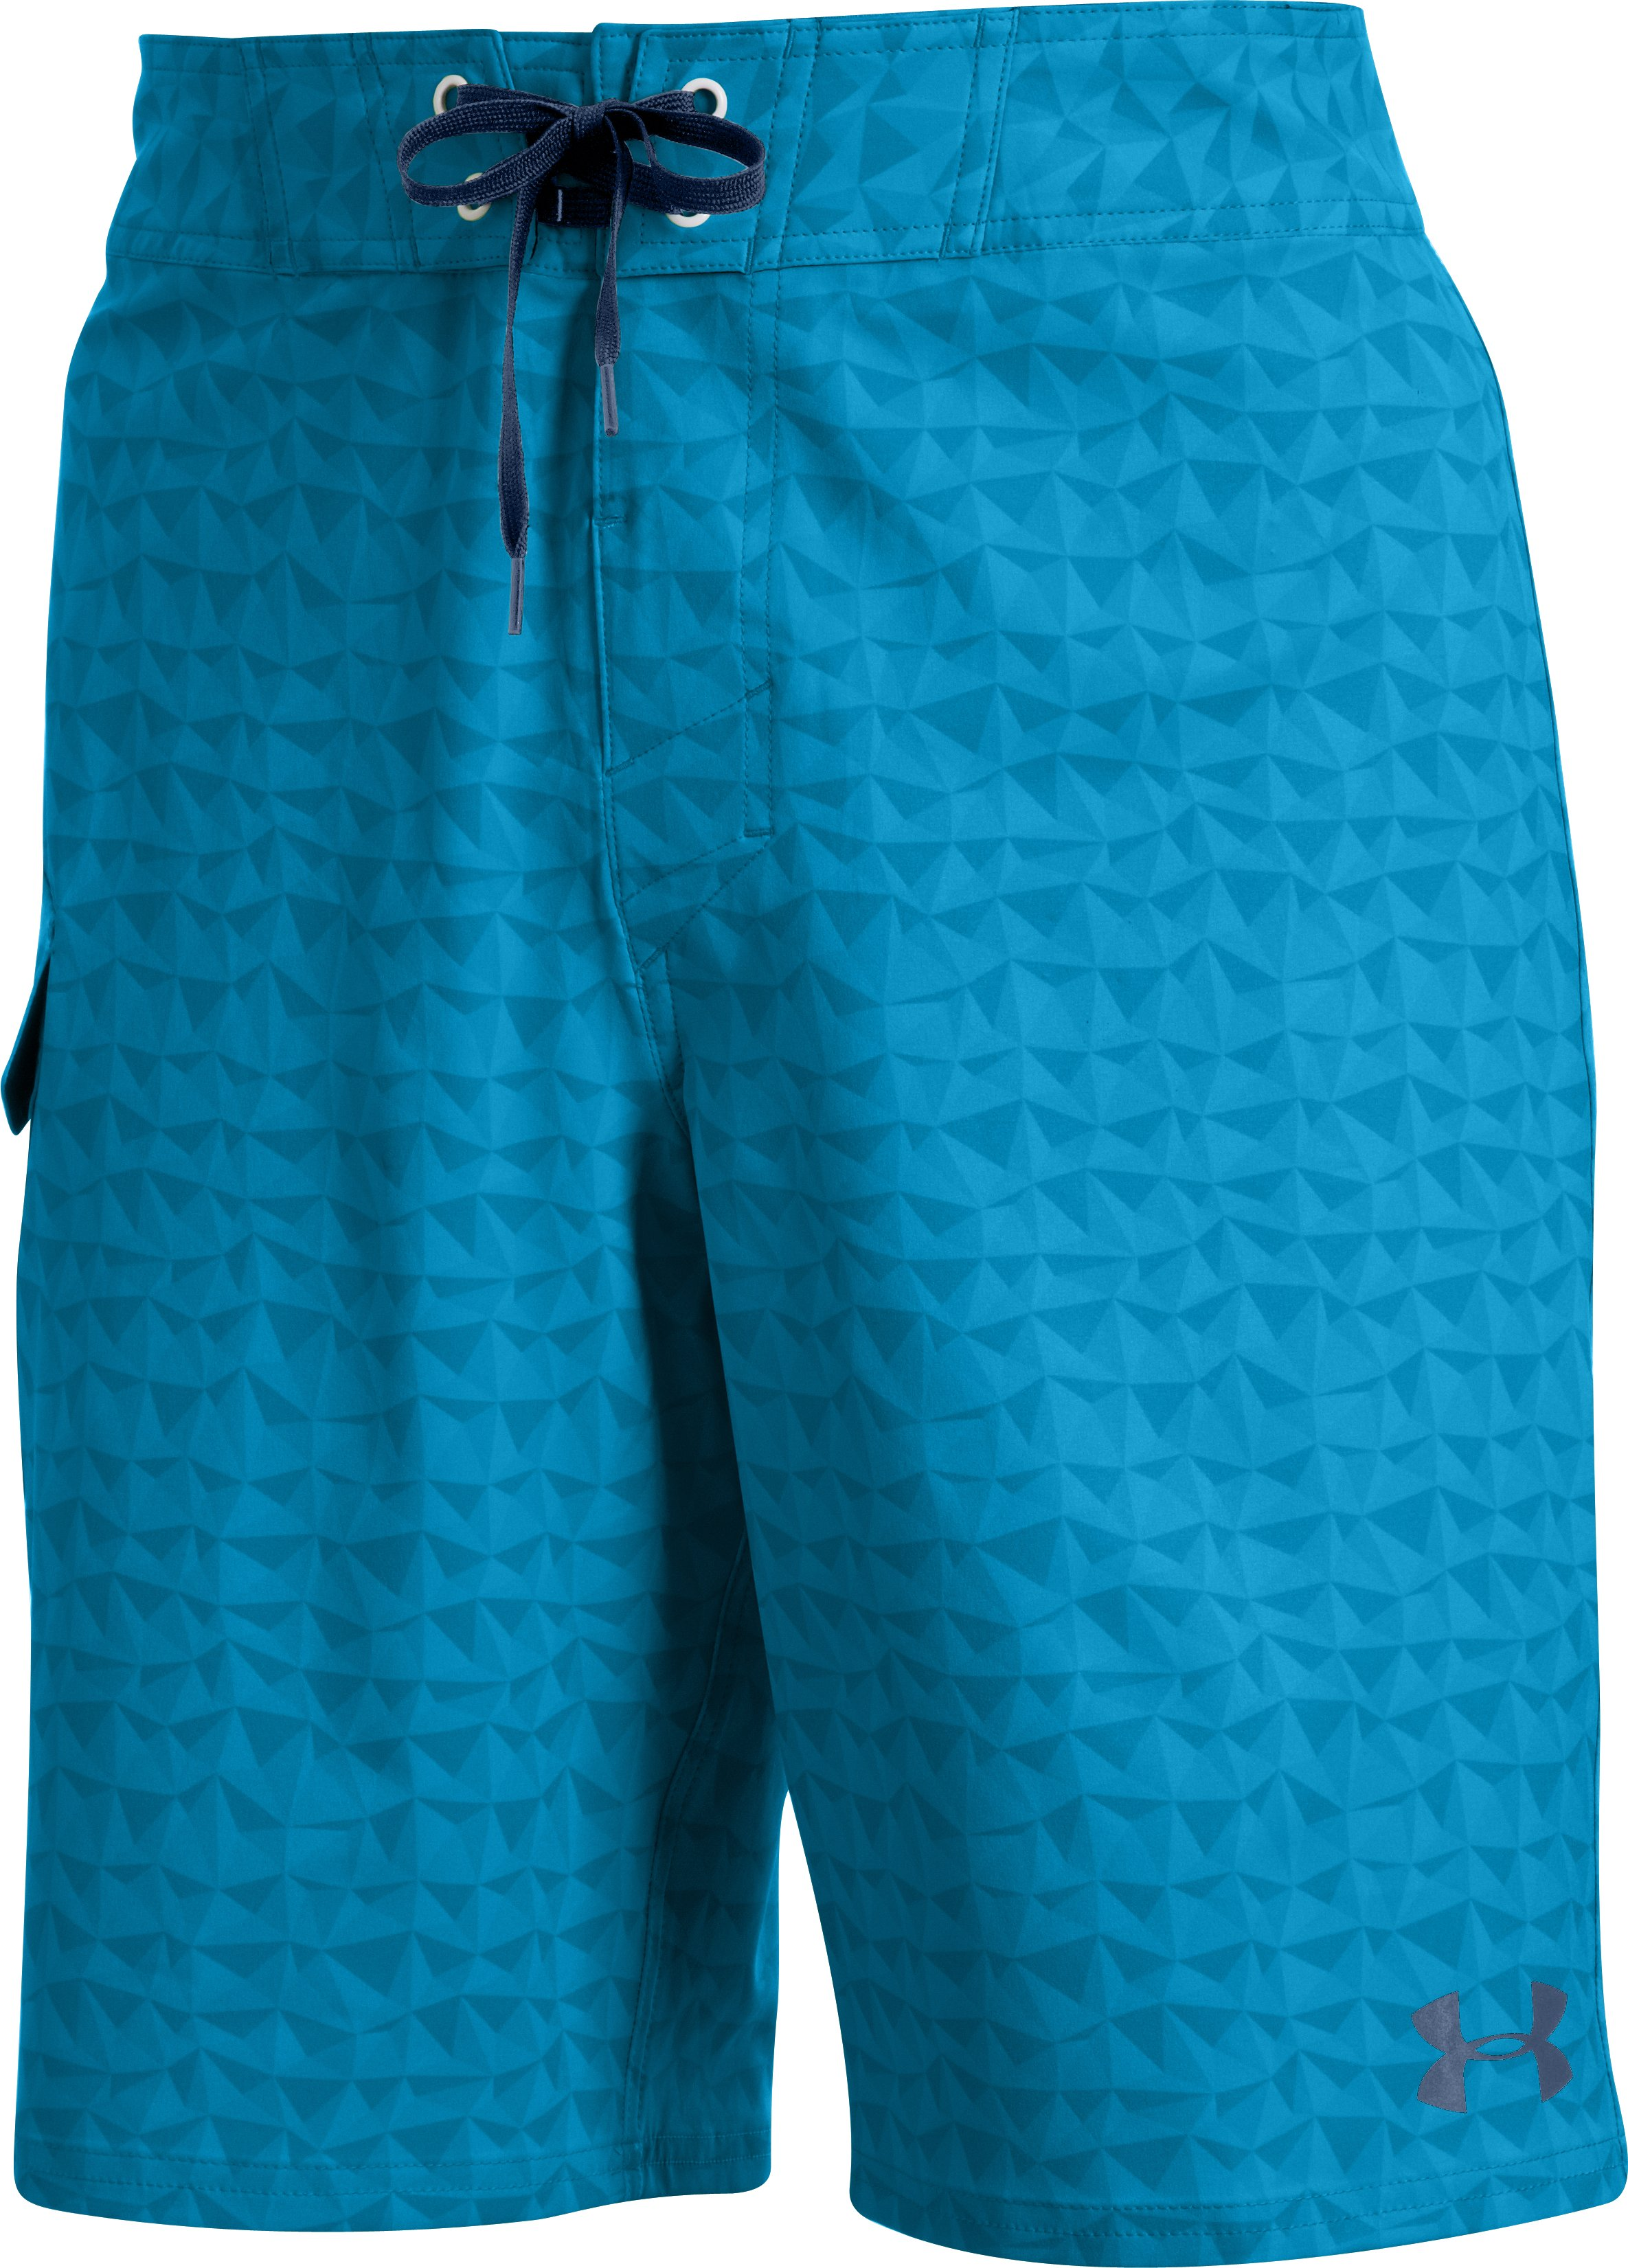 Men's UA Explorit Boardshorts, PIRATE BLUE, undefined